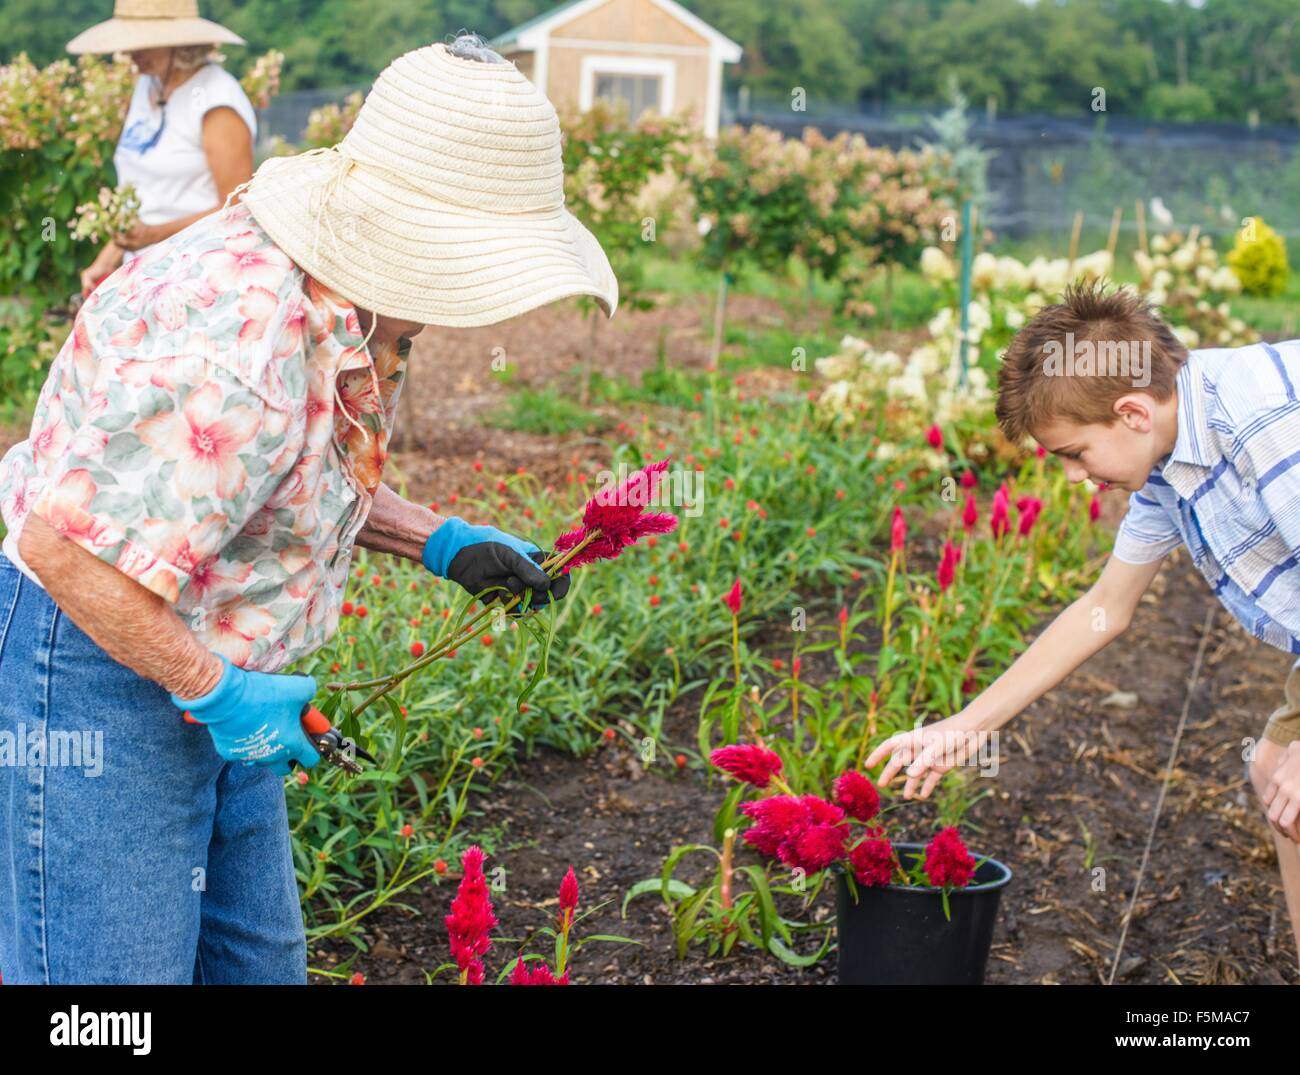 Senior woman and grandson harvesting flowers on farm - Stock Image